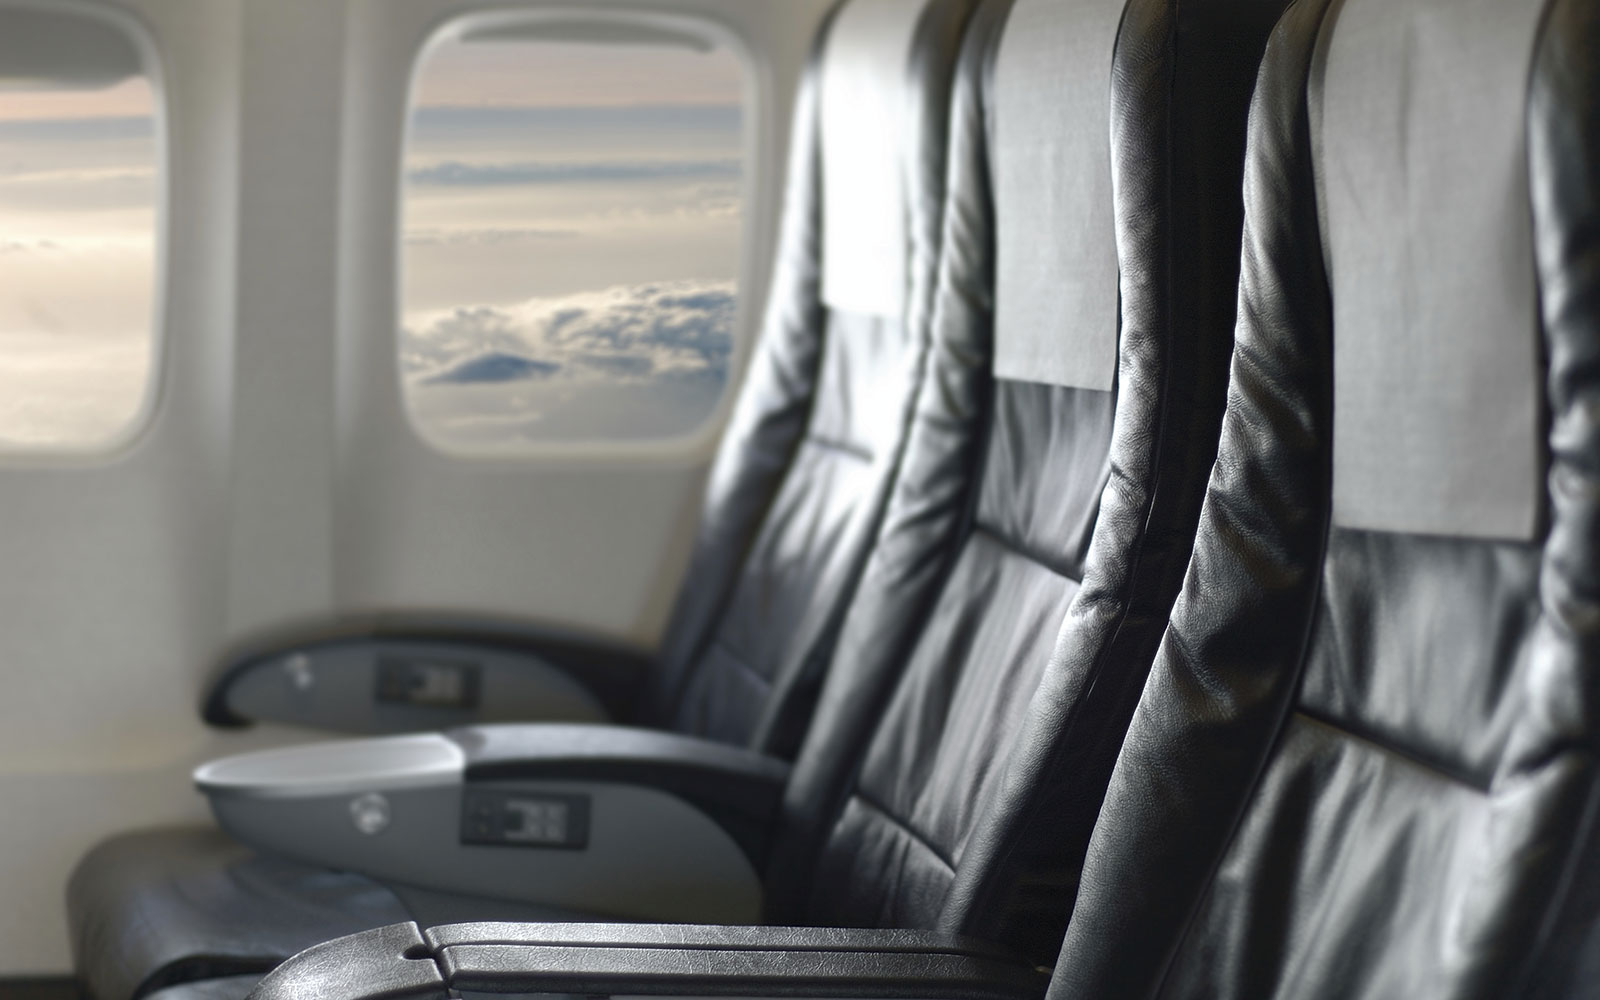 How to Survive the Middle Seat